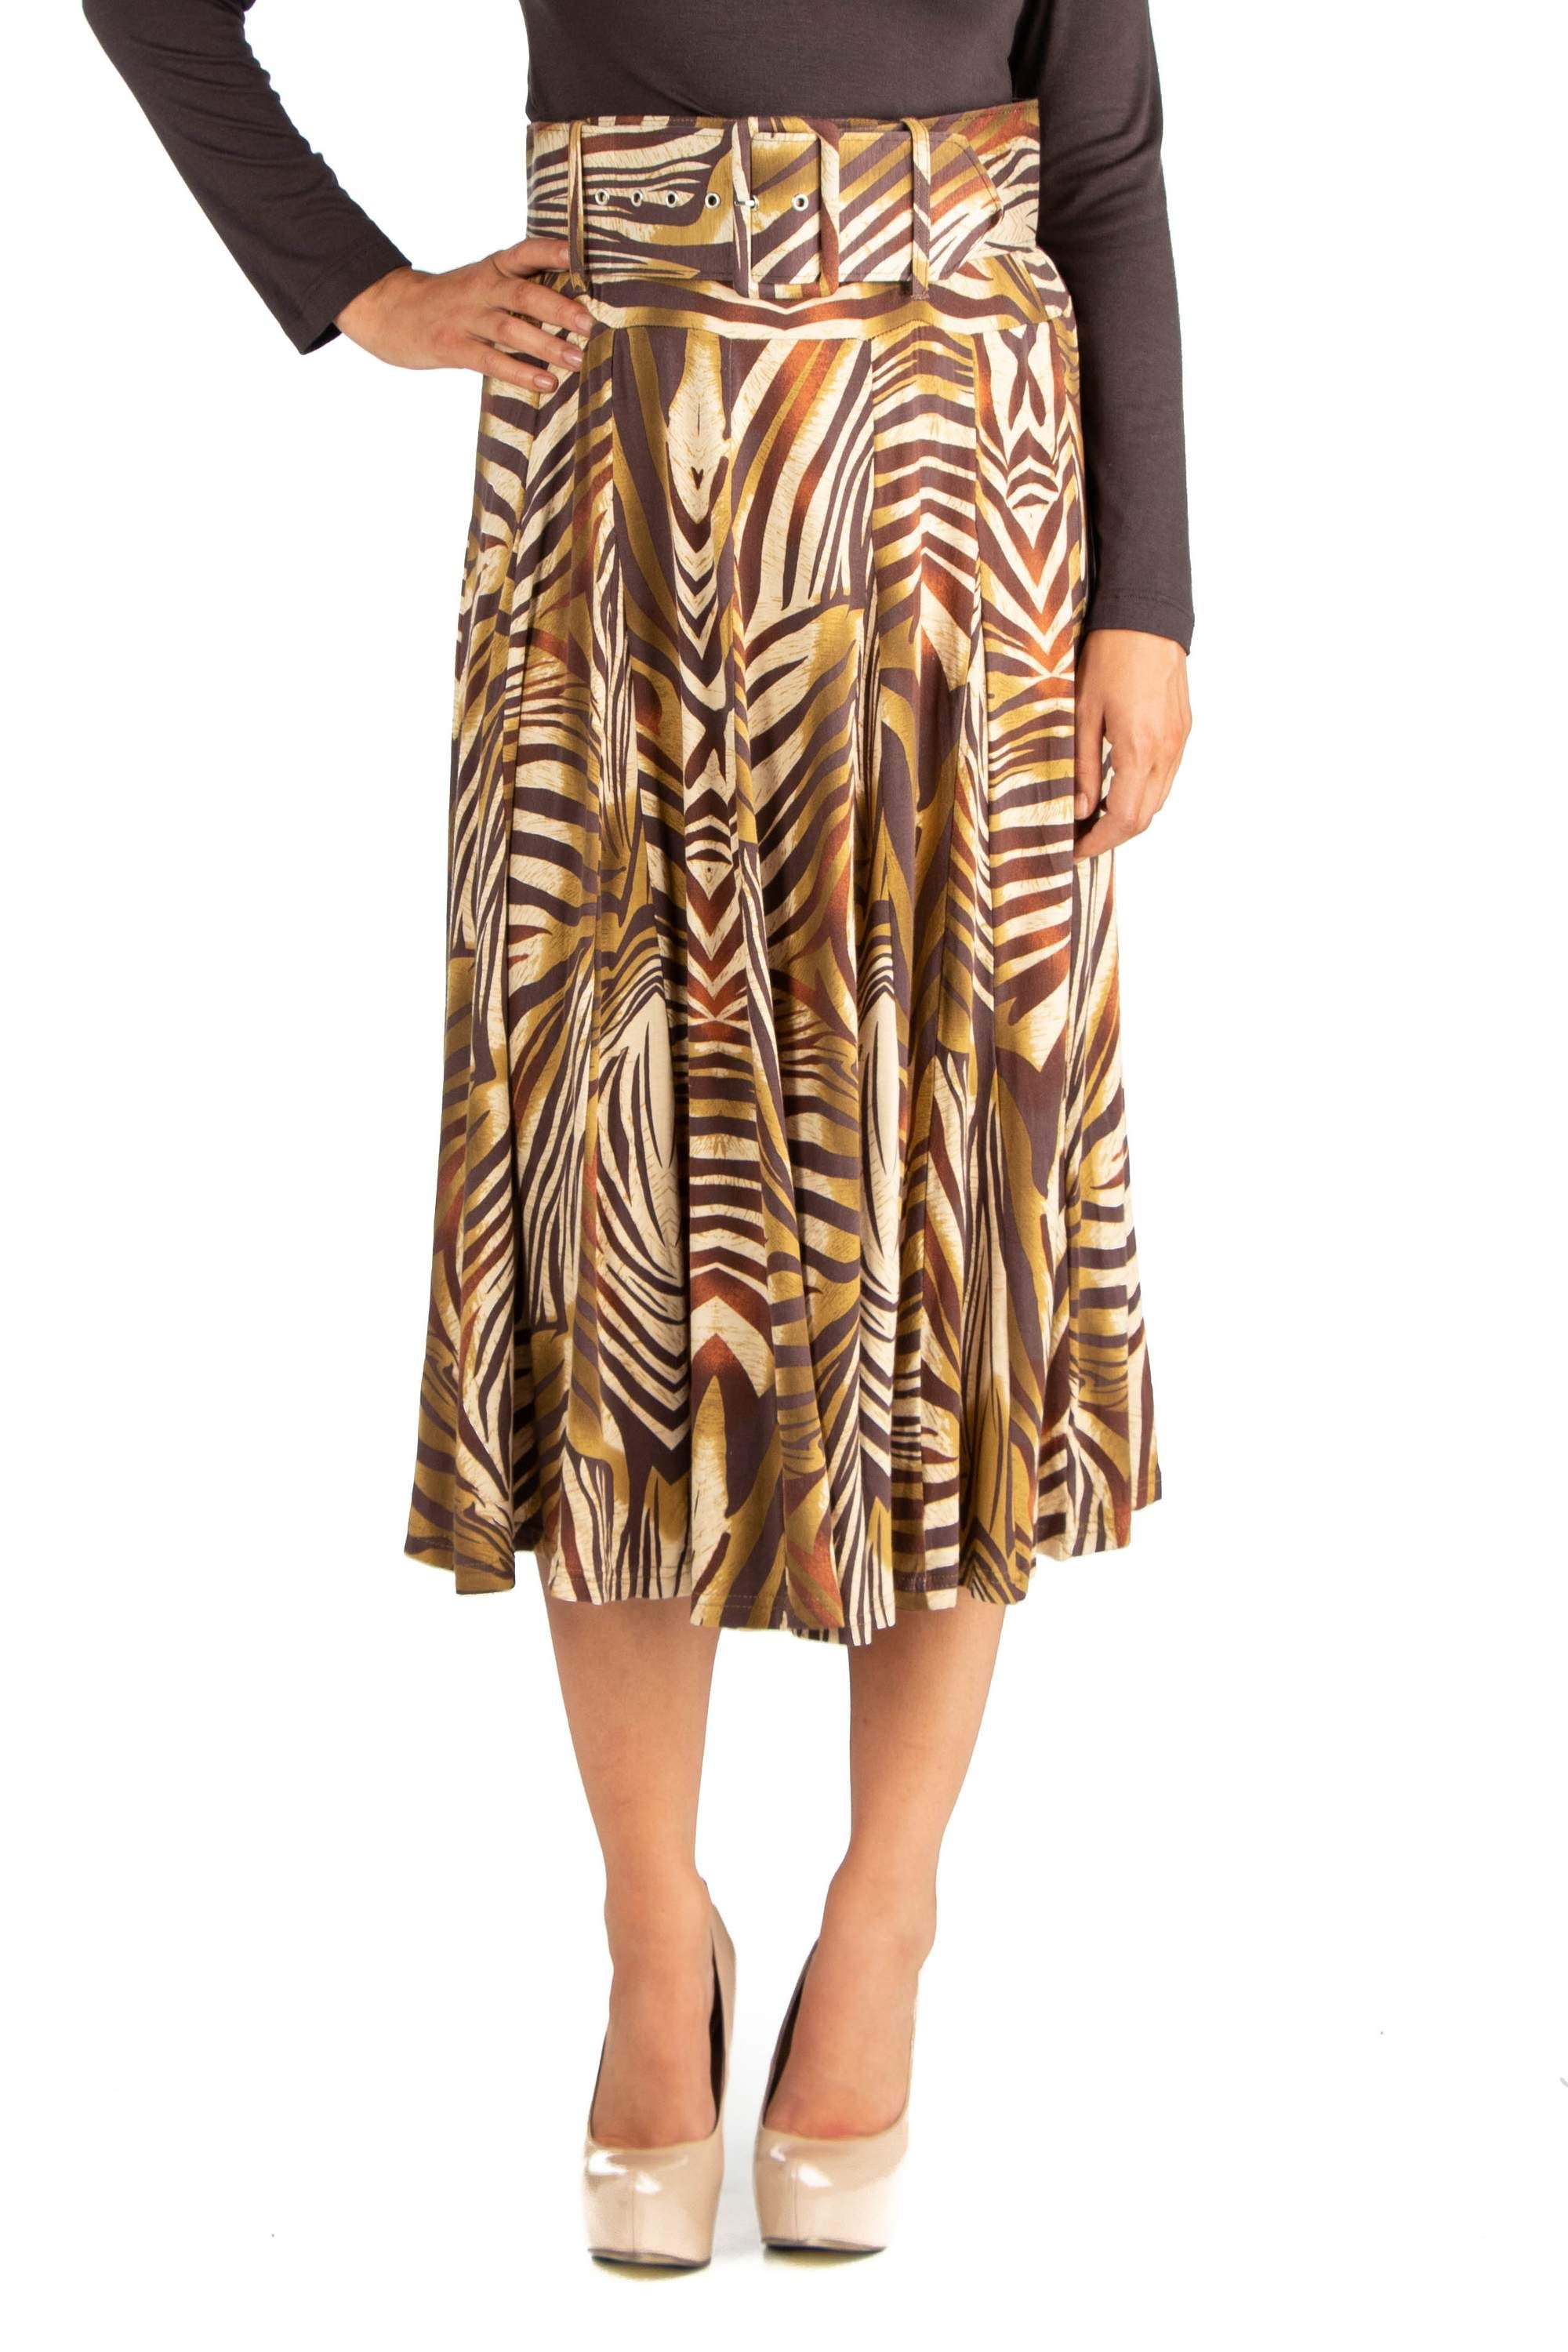 d6a5015bf6 24seven Comfort Apparel Womens Animal Print Belted Midi Skirt#Apparel,  #Womens, #